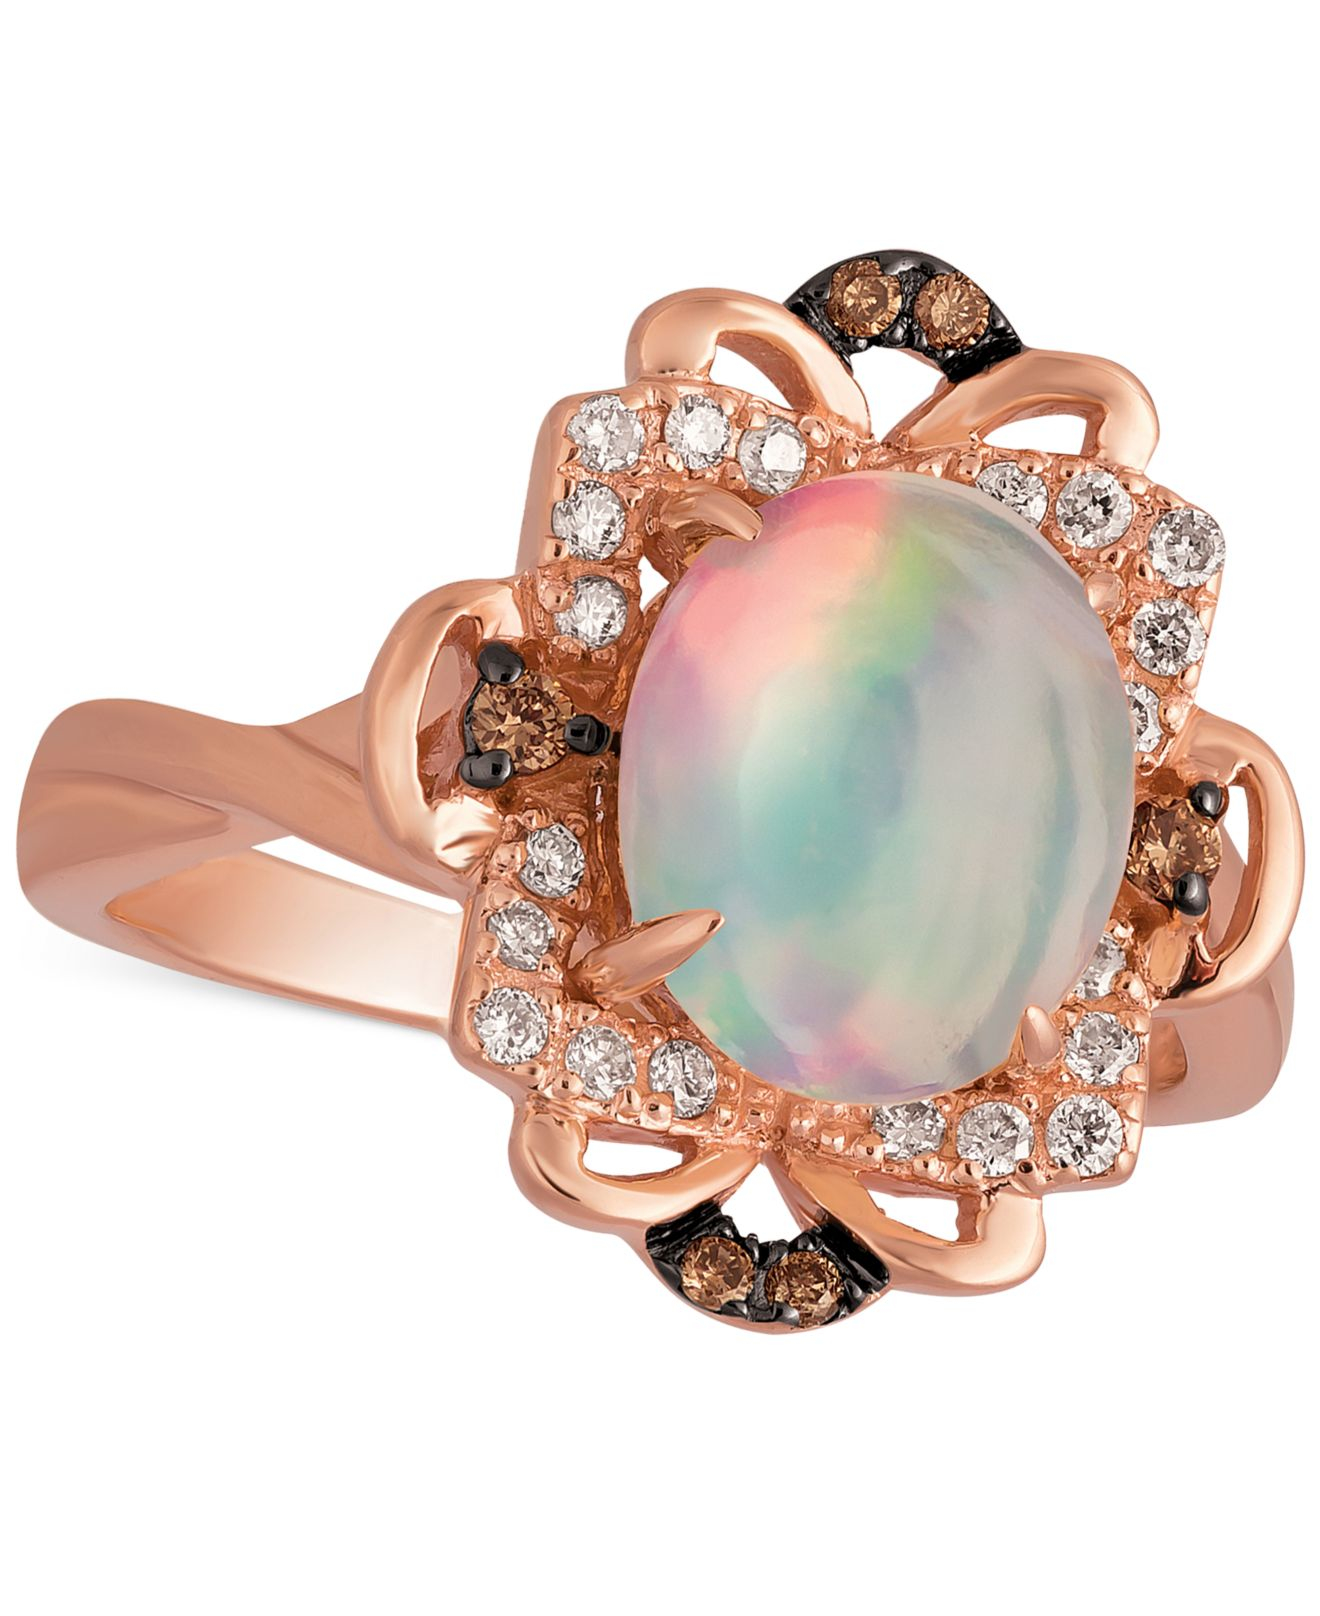 Le Vian Limited Edition Rings